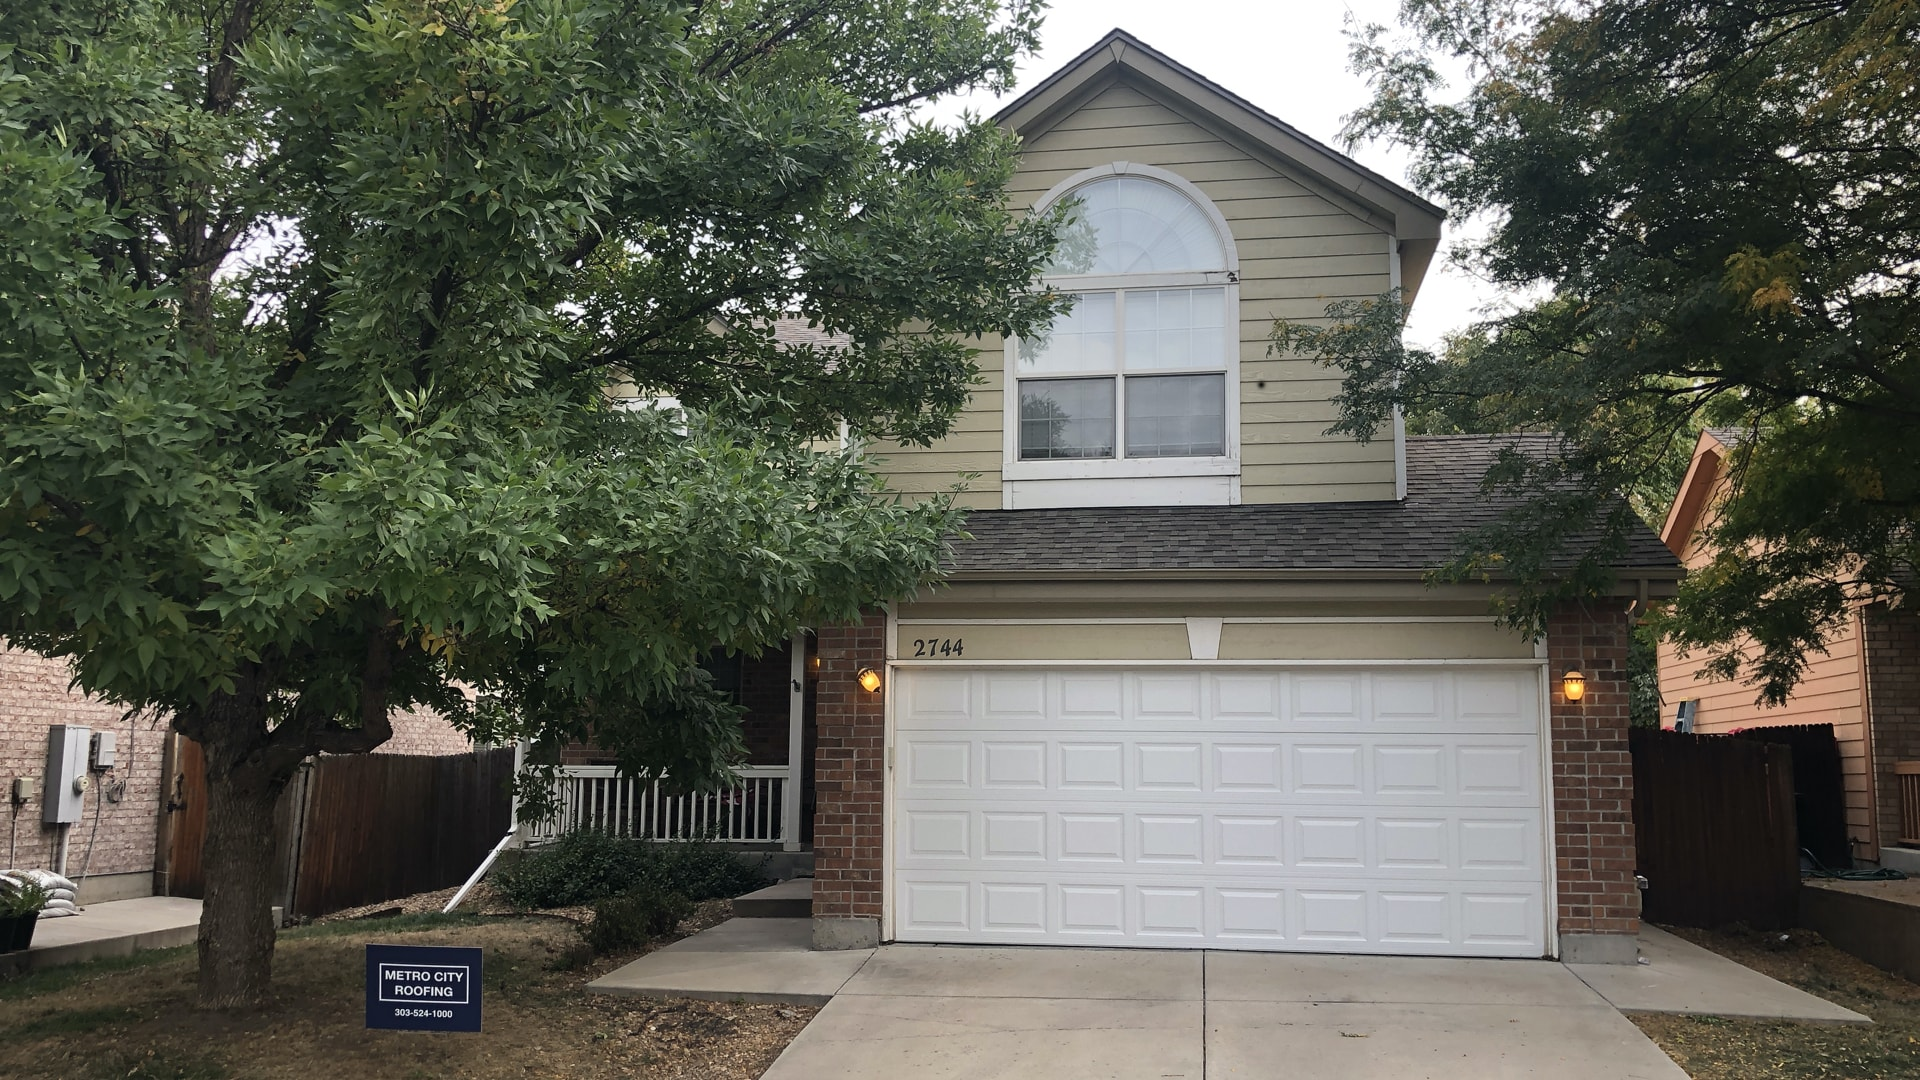 2-story home with beige siding and white garage with large tree and blue Metro City Roofing sign in the front yard